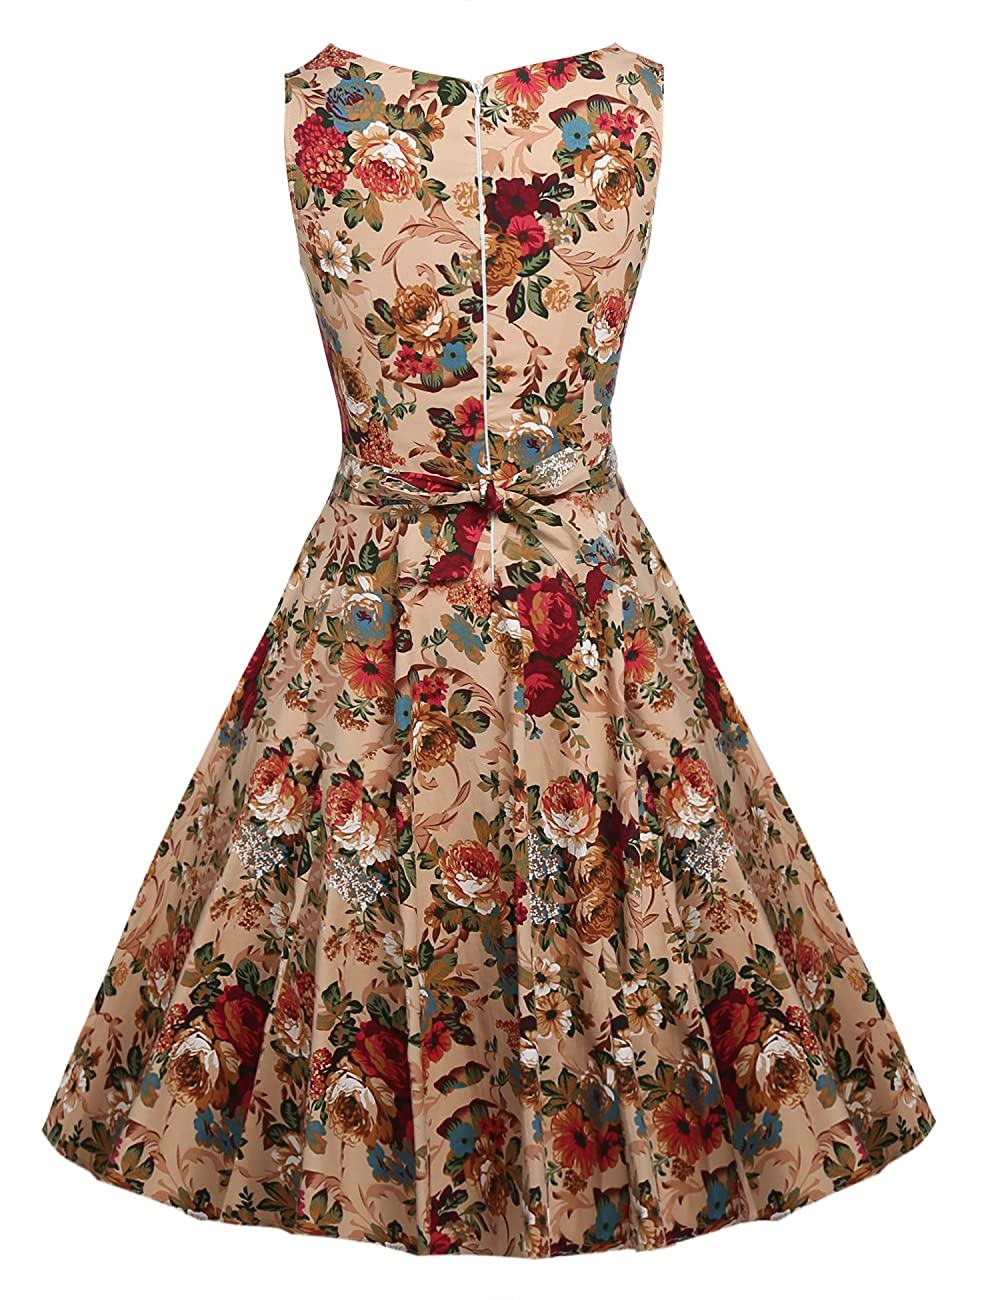 ARANEE Vintage Classy Floral Sleeveless Party Picnic Party Cocktail Dress 2